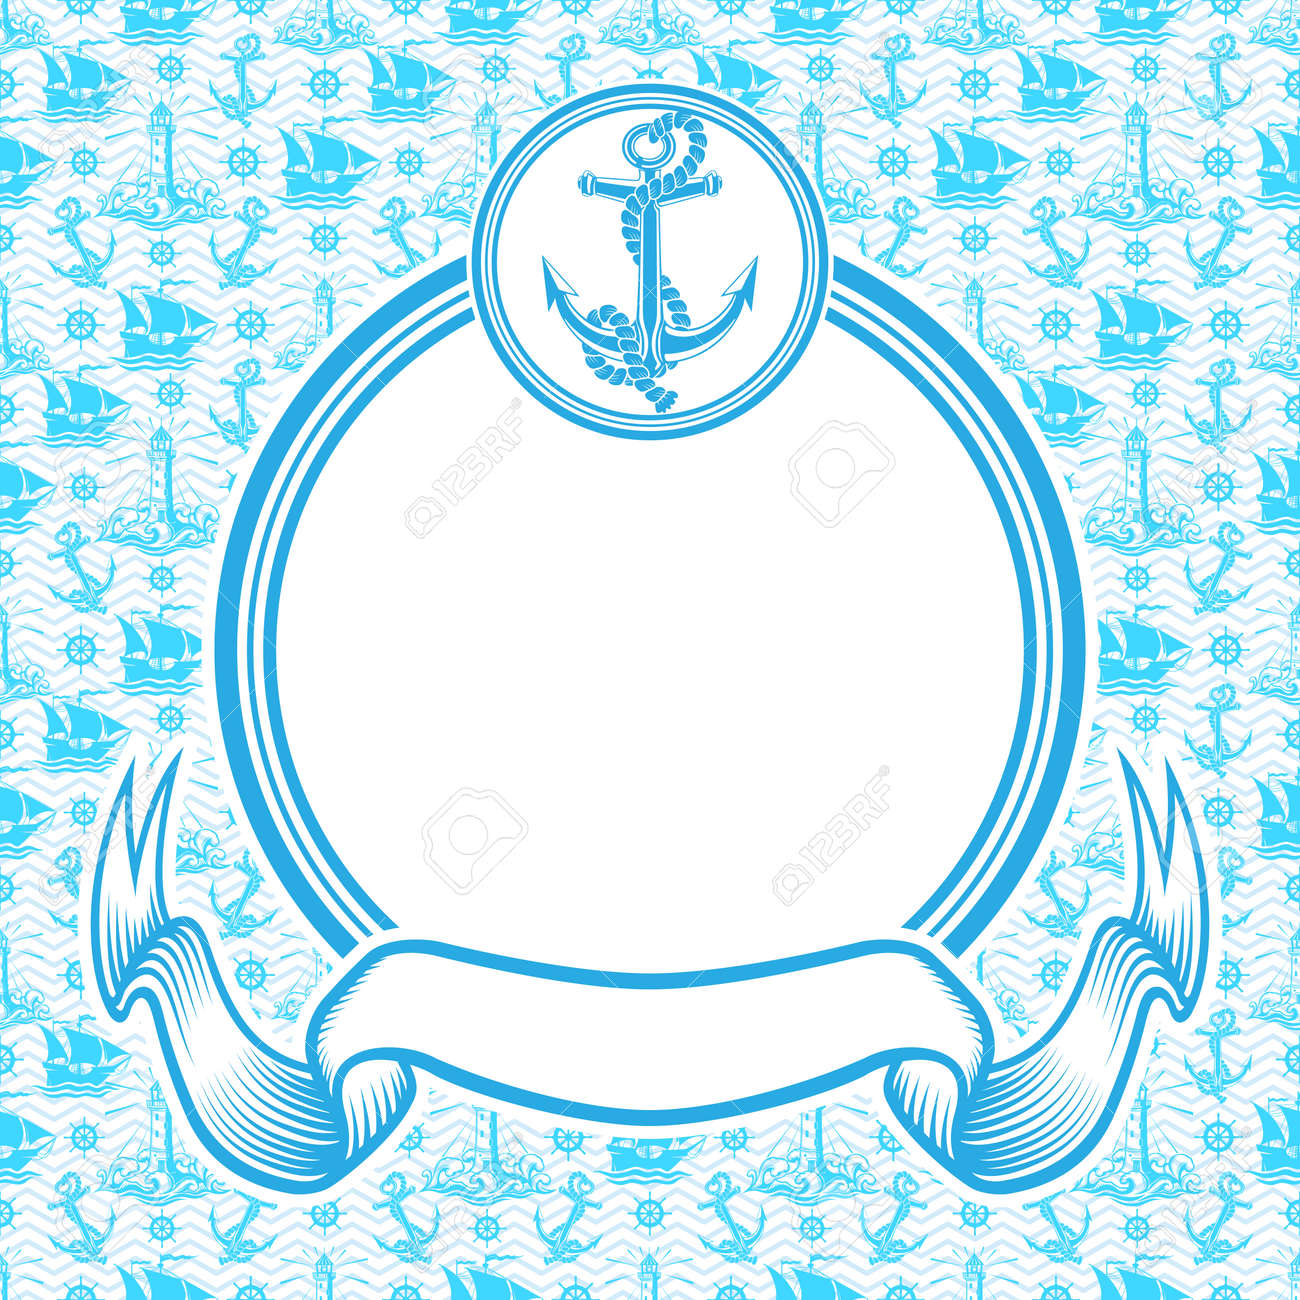 Nautical banner with round blue frame with anchor and ribbon. - 165505872